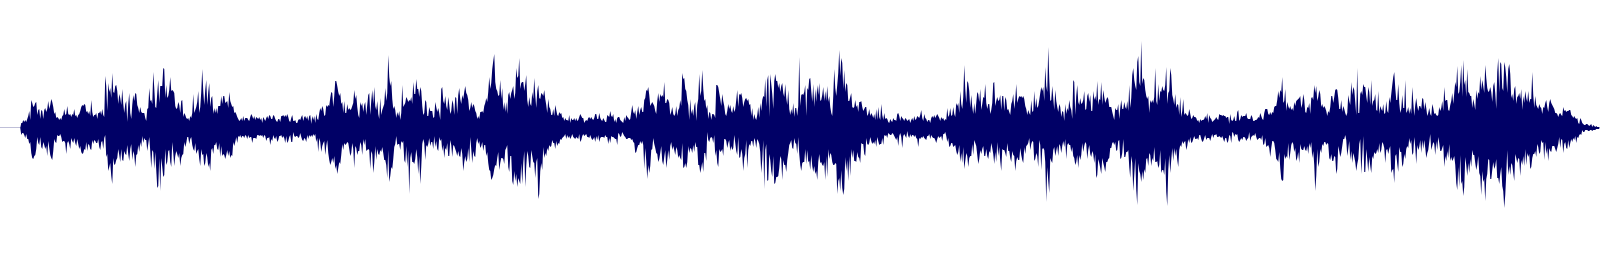 waveform of track #140761